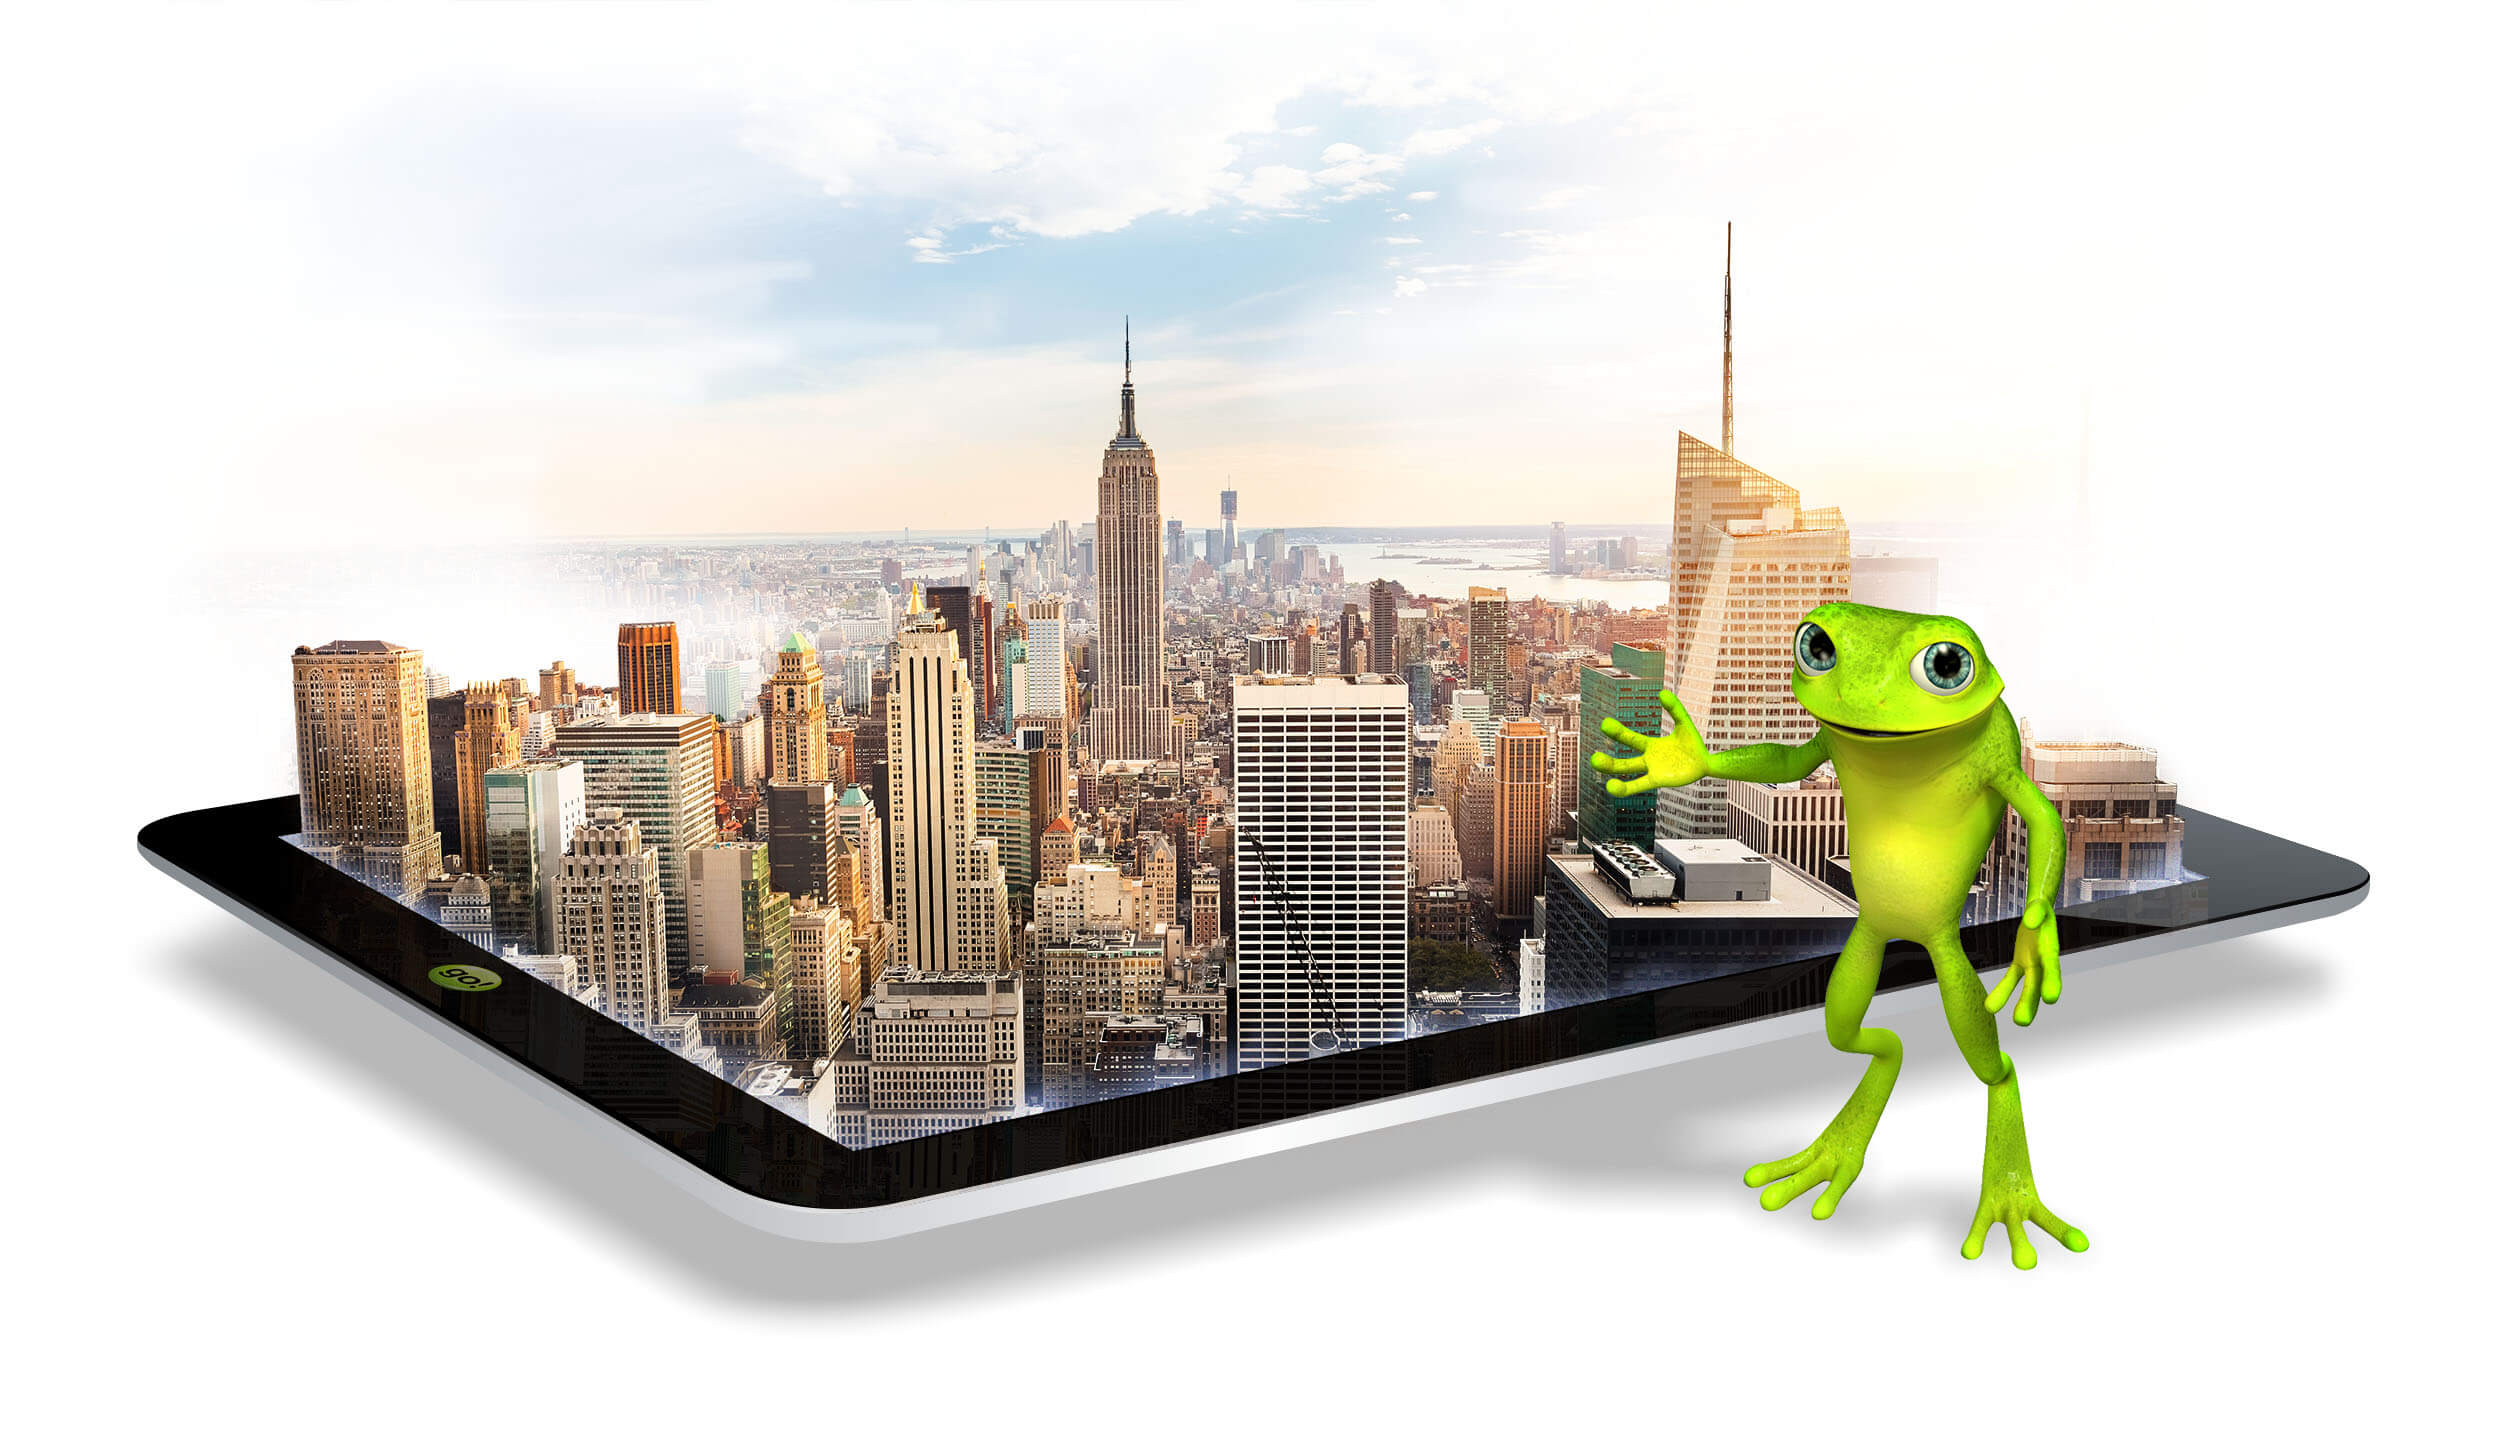 eZanga the trusted online marketing firm: eZanga's mascot Jimmy Hoppa pointing at New York city skyline at sunrise